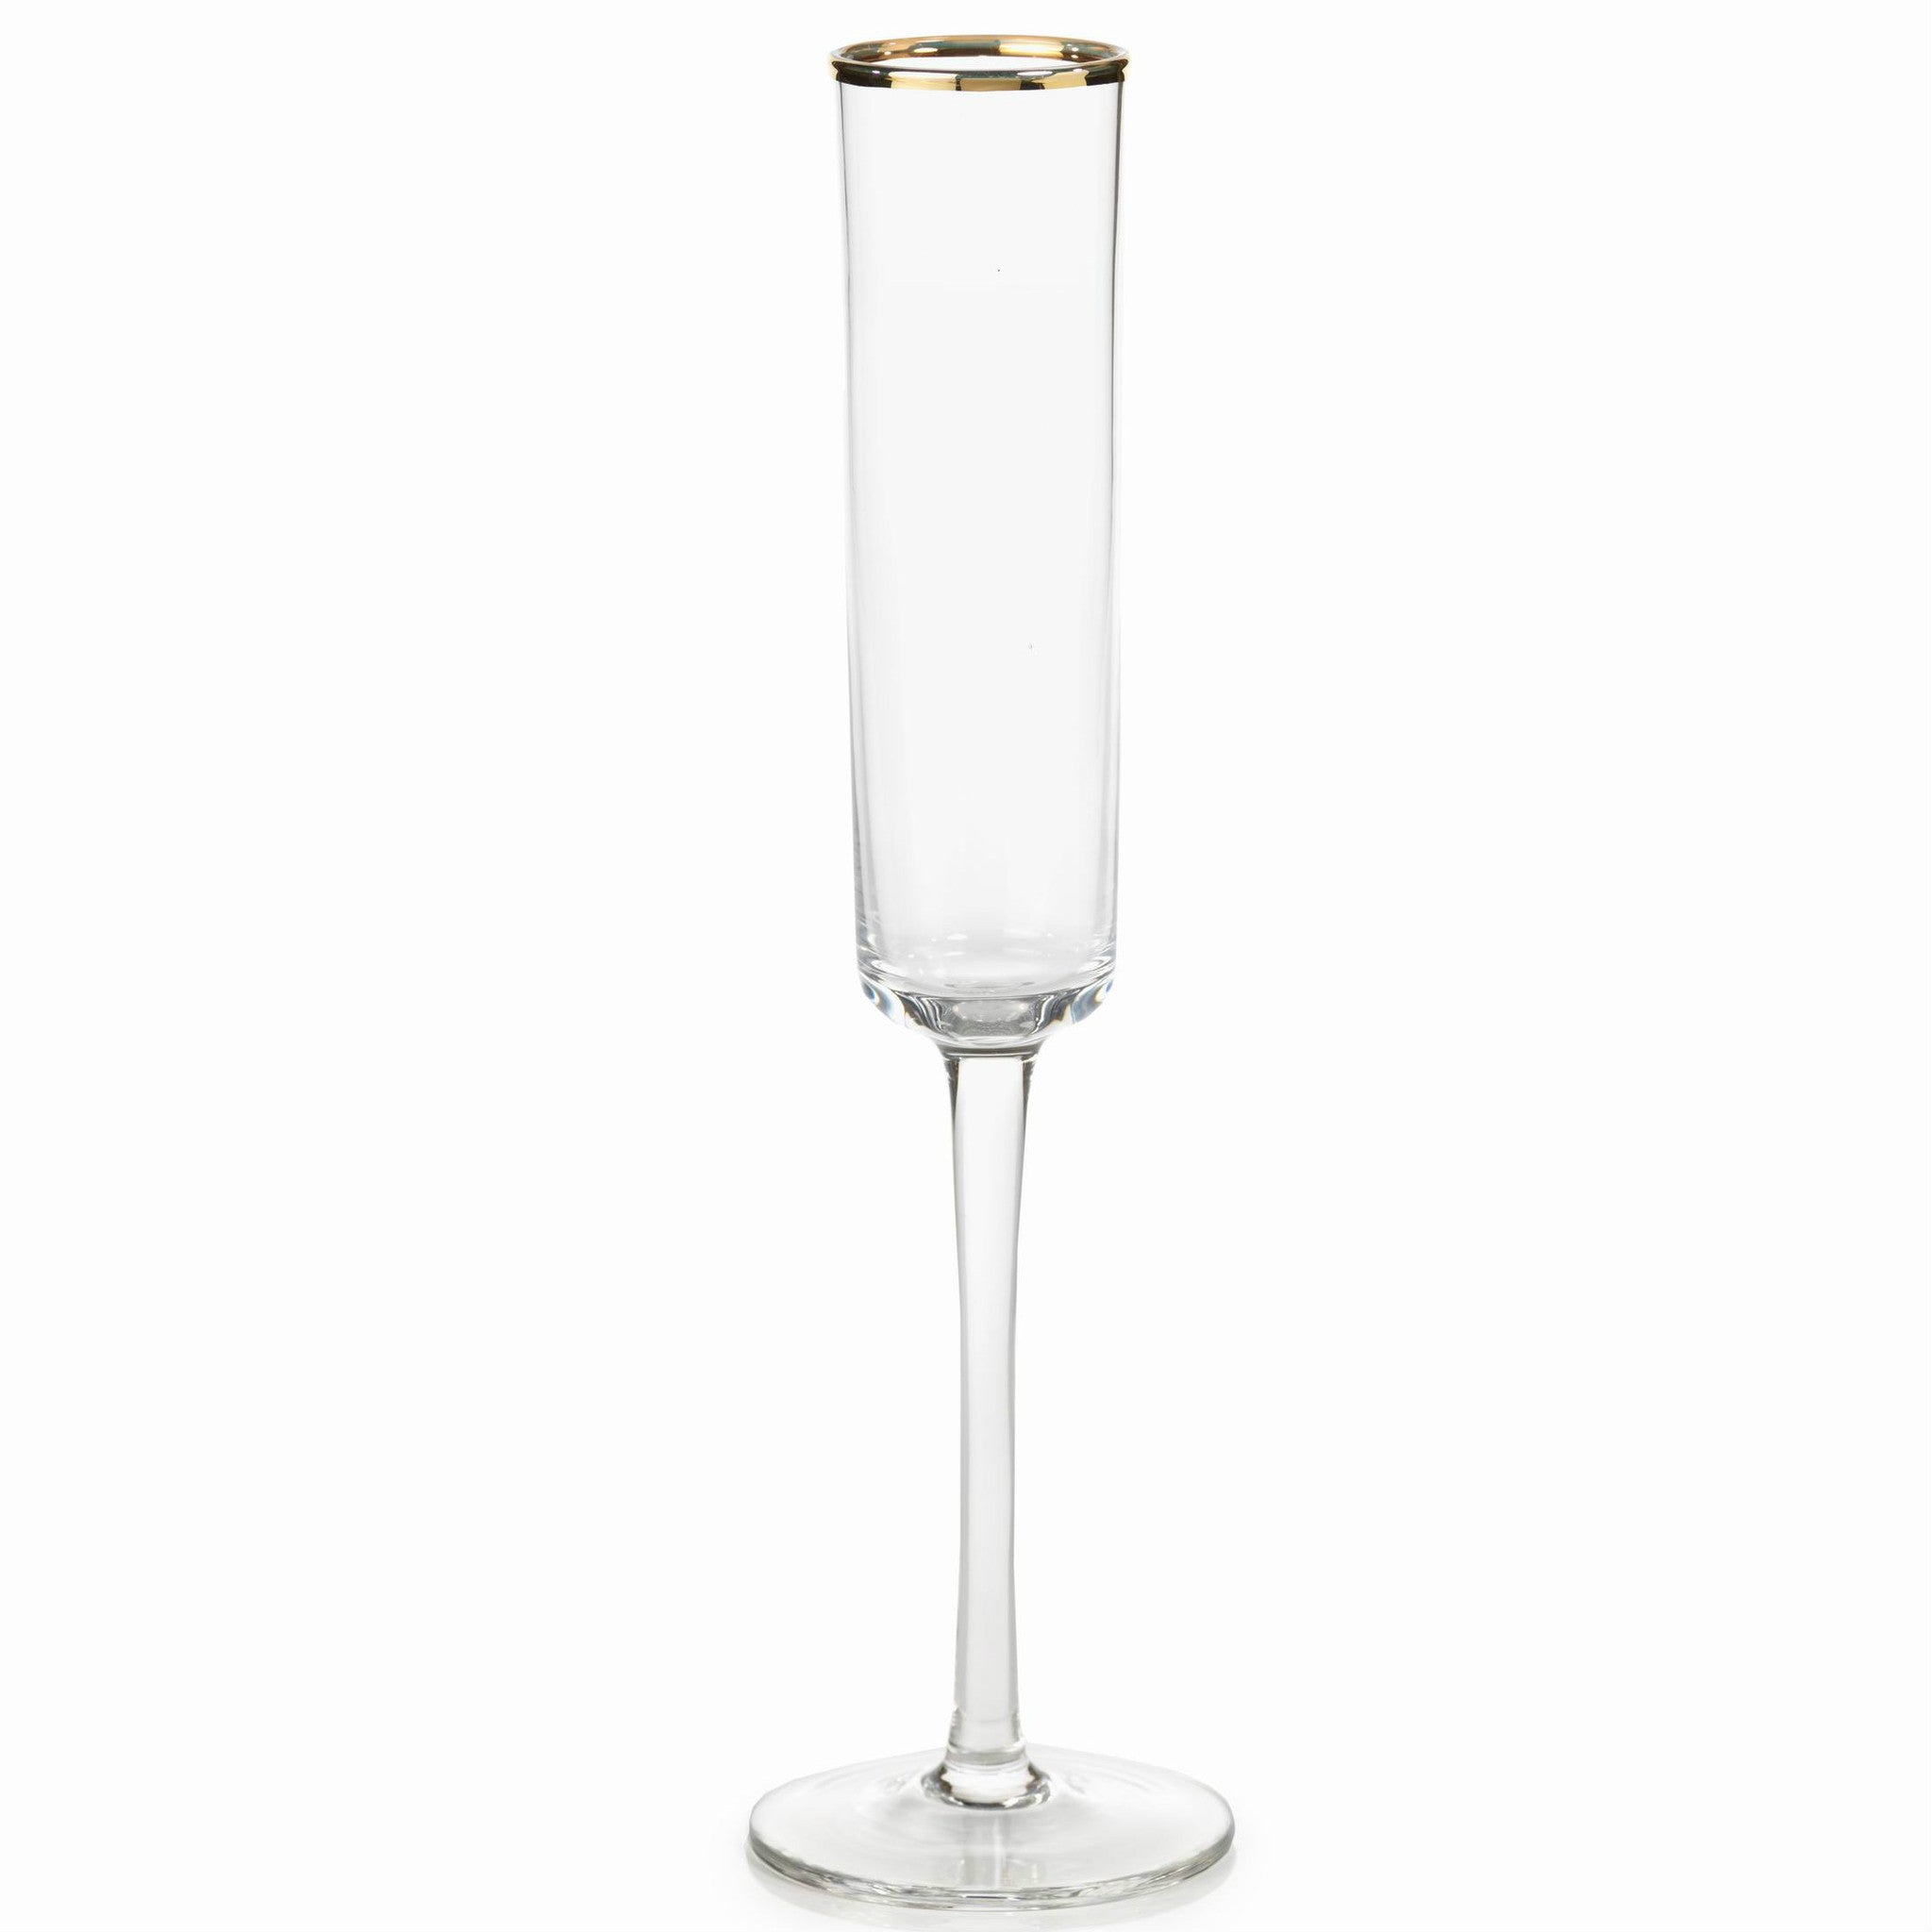 Tall Champagne Flutes with Gold Rim - Set of 6 -  - CARLYLE AVENUE - 3